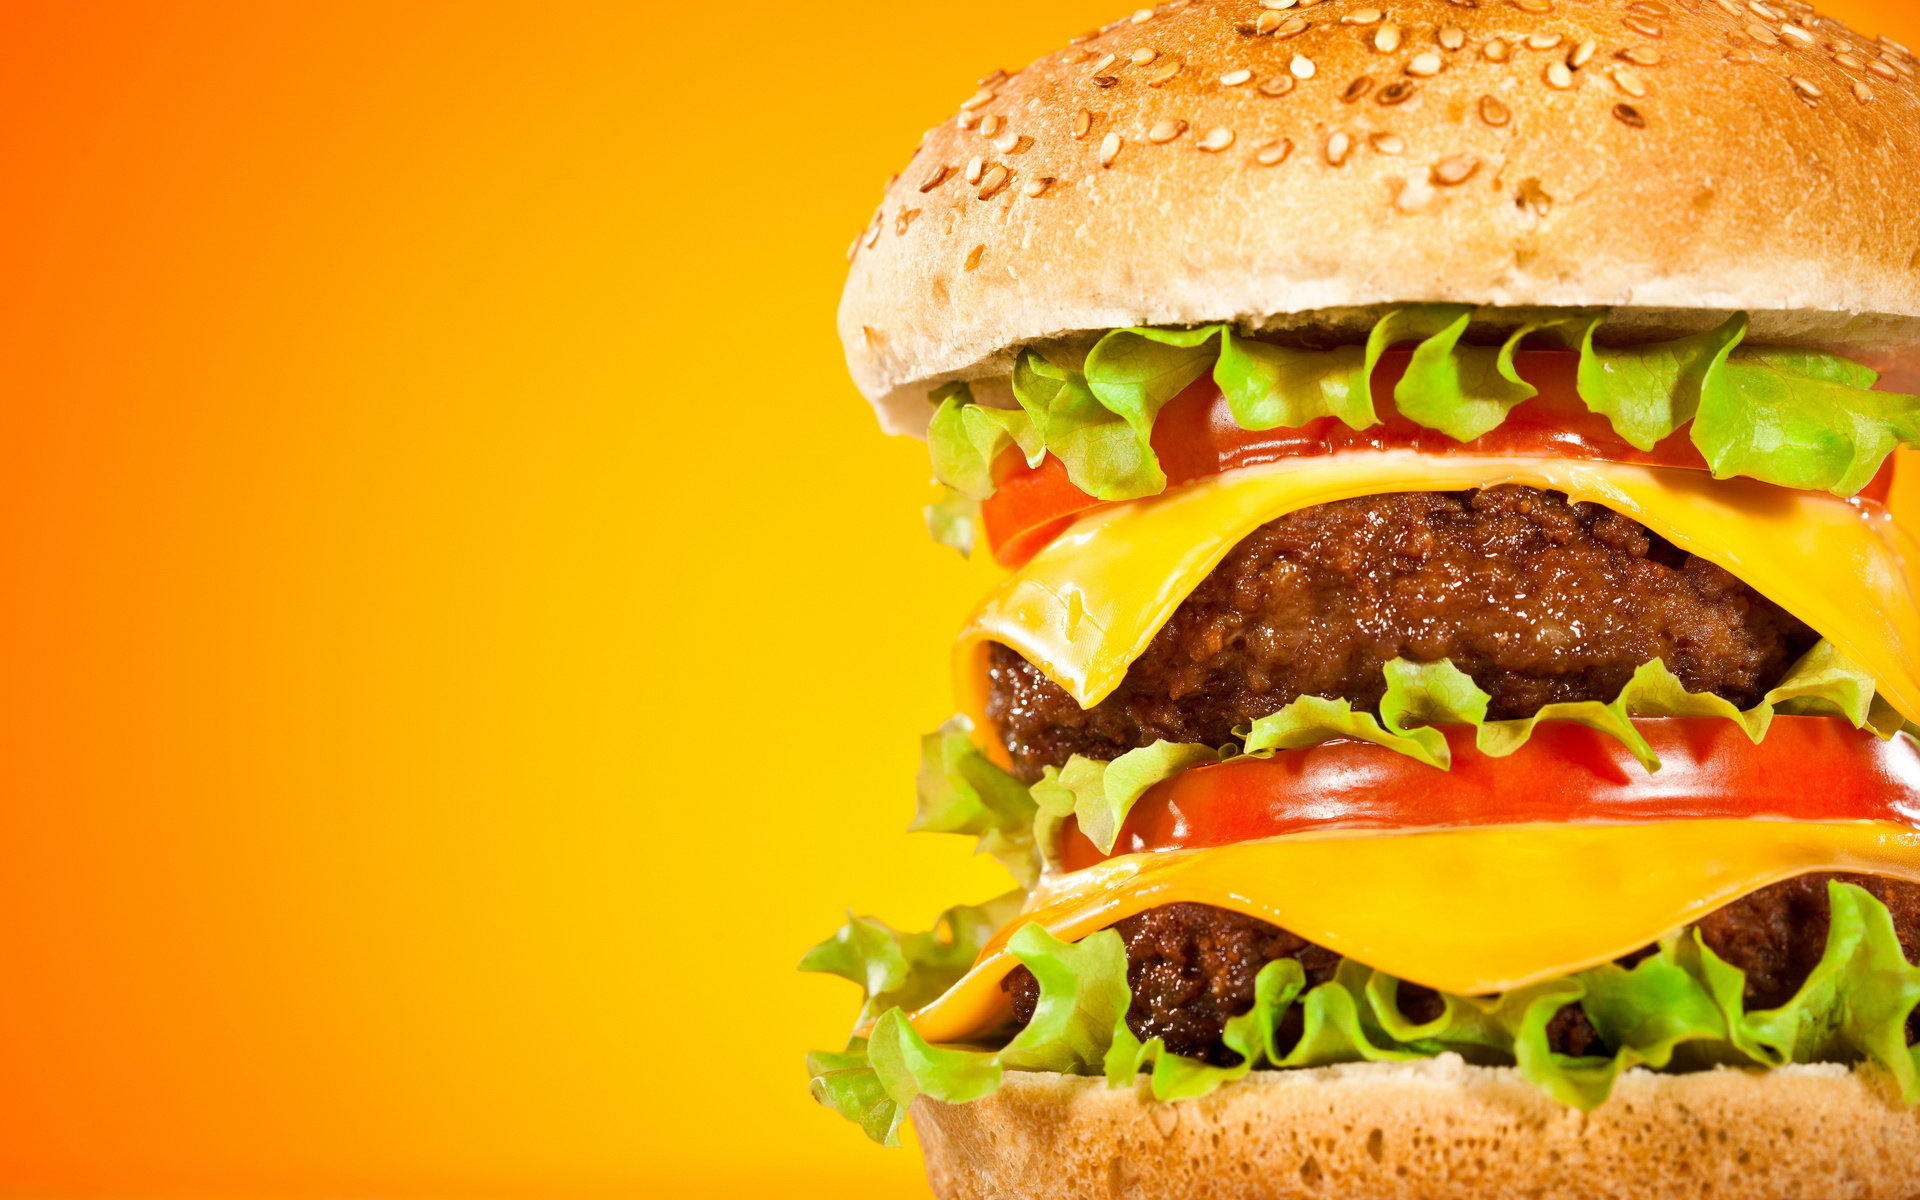 Awesome Burger free background ID:149177 for hd 1920x1200 computer